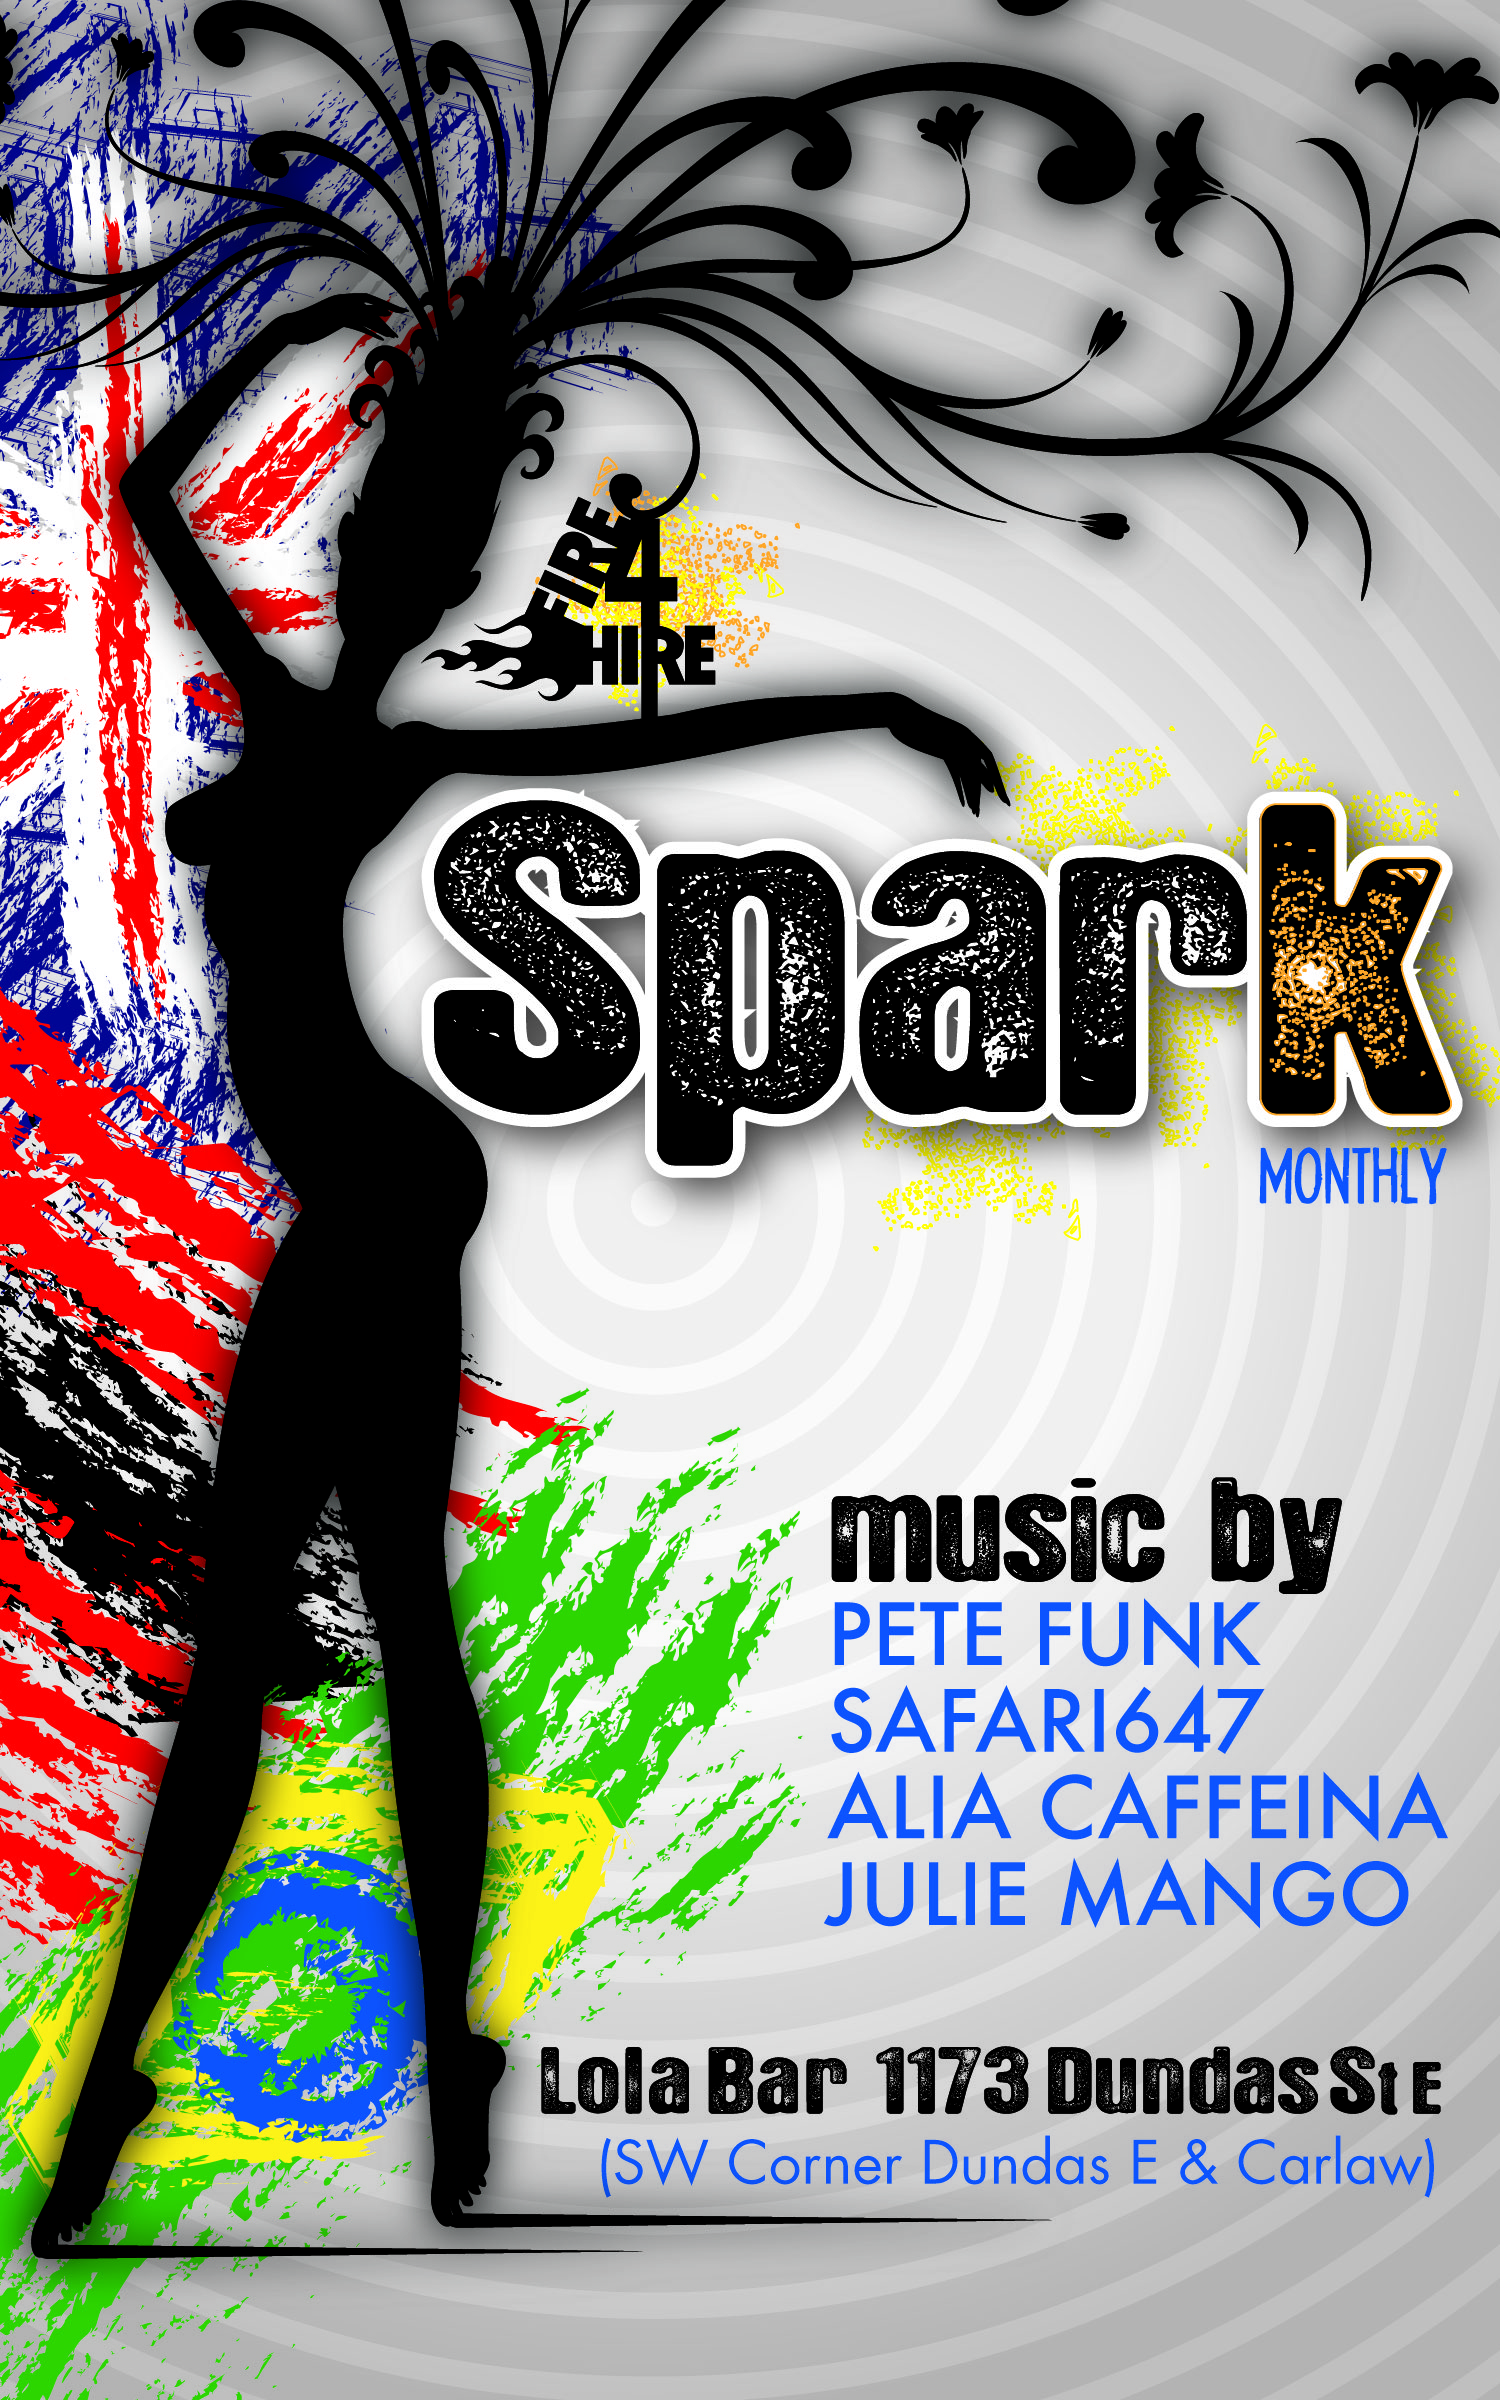 Spark Carnival Lola Bar Fire 4 Hire Soundsystem